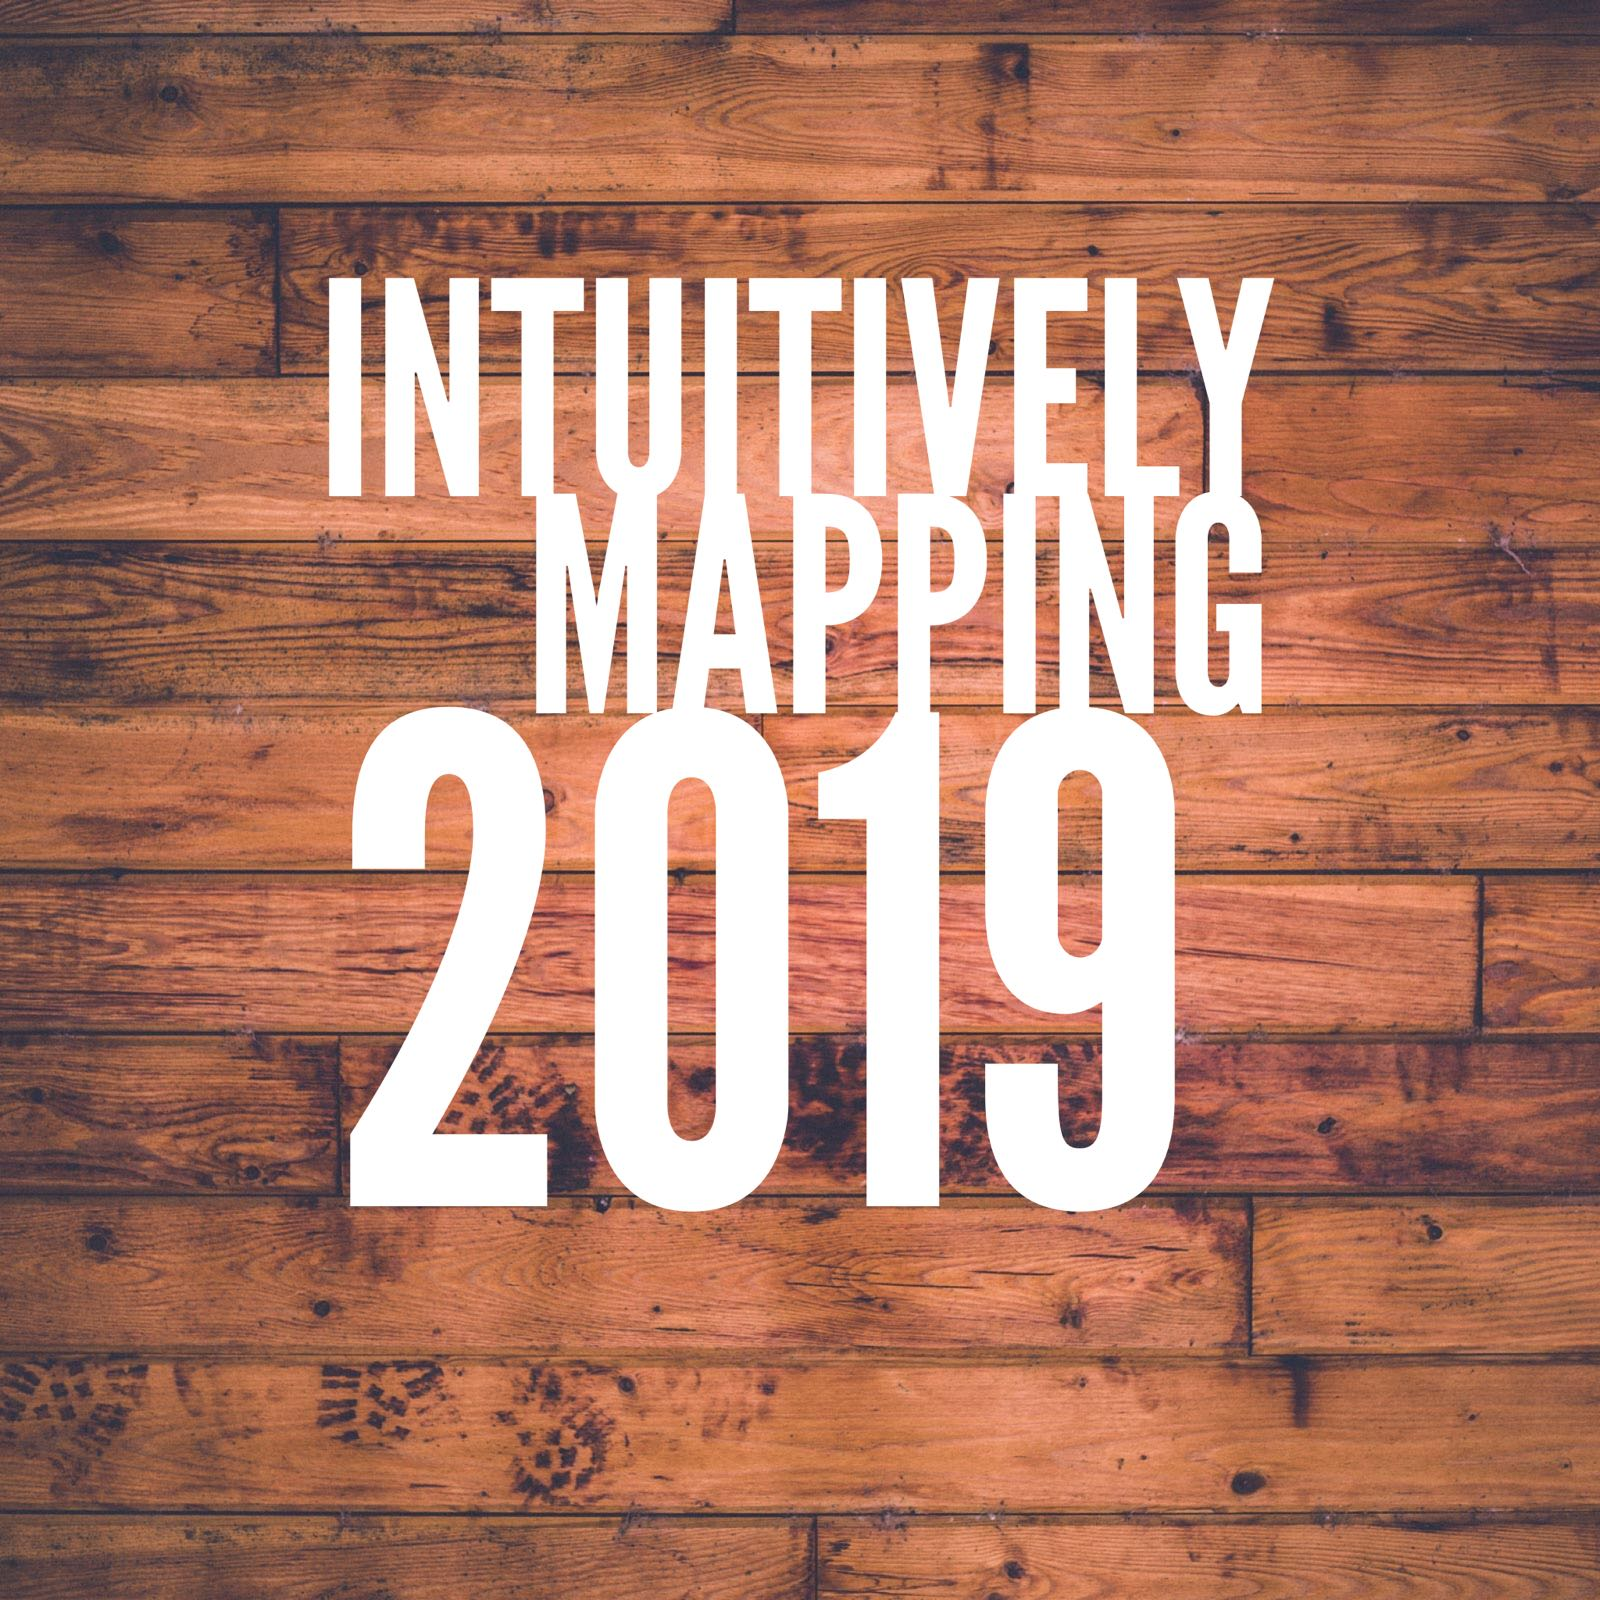 intuitively mapping 2019.jpeg